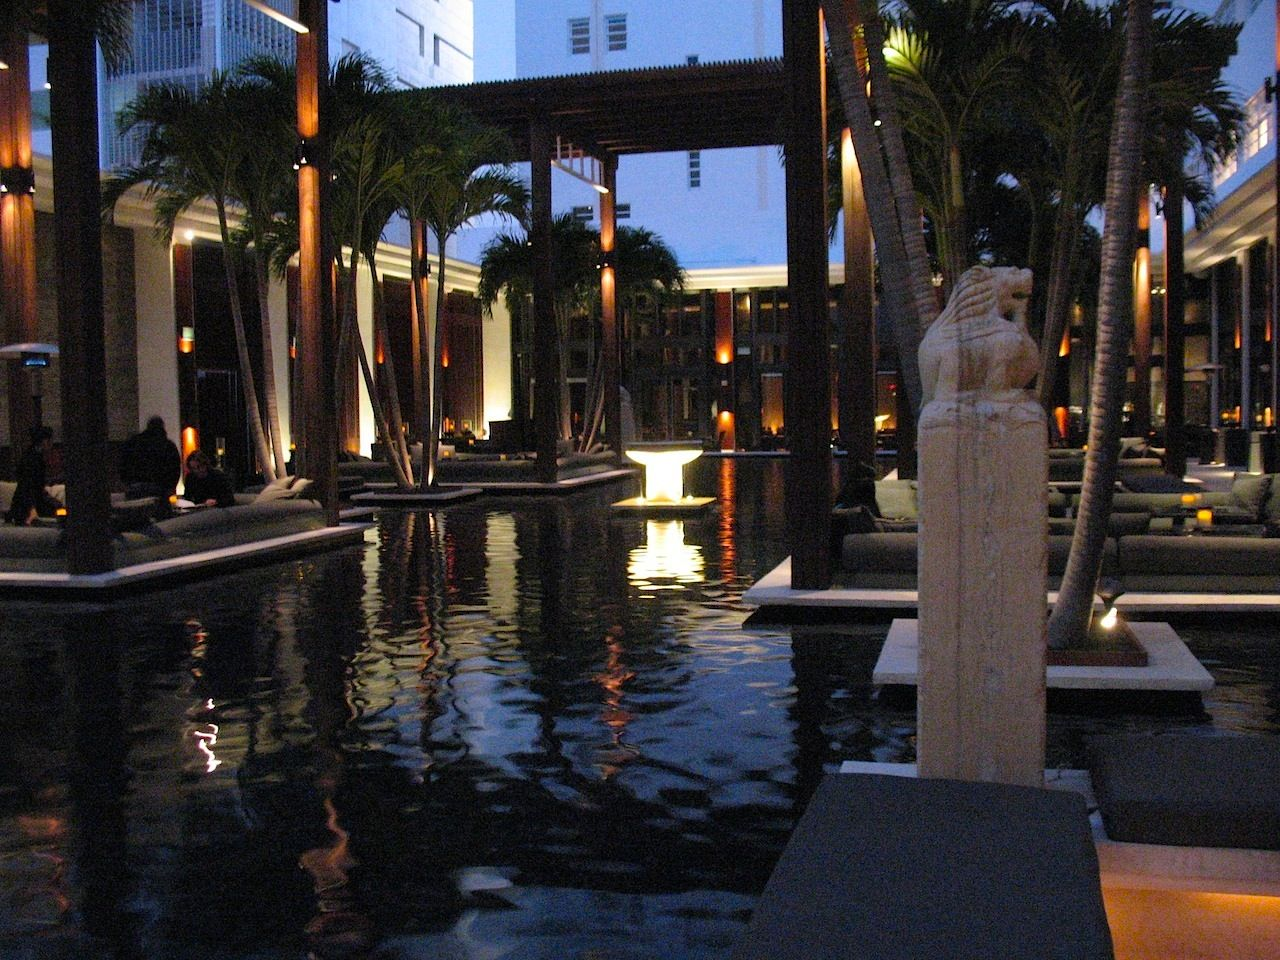 The Setai Hotel In South Beach Miami